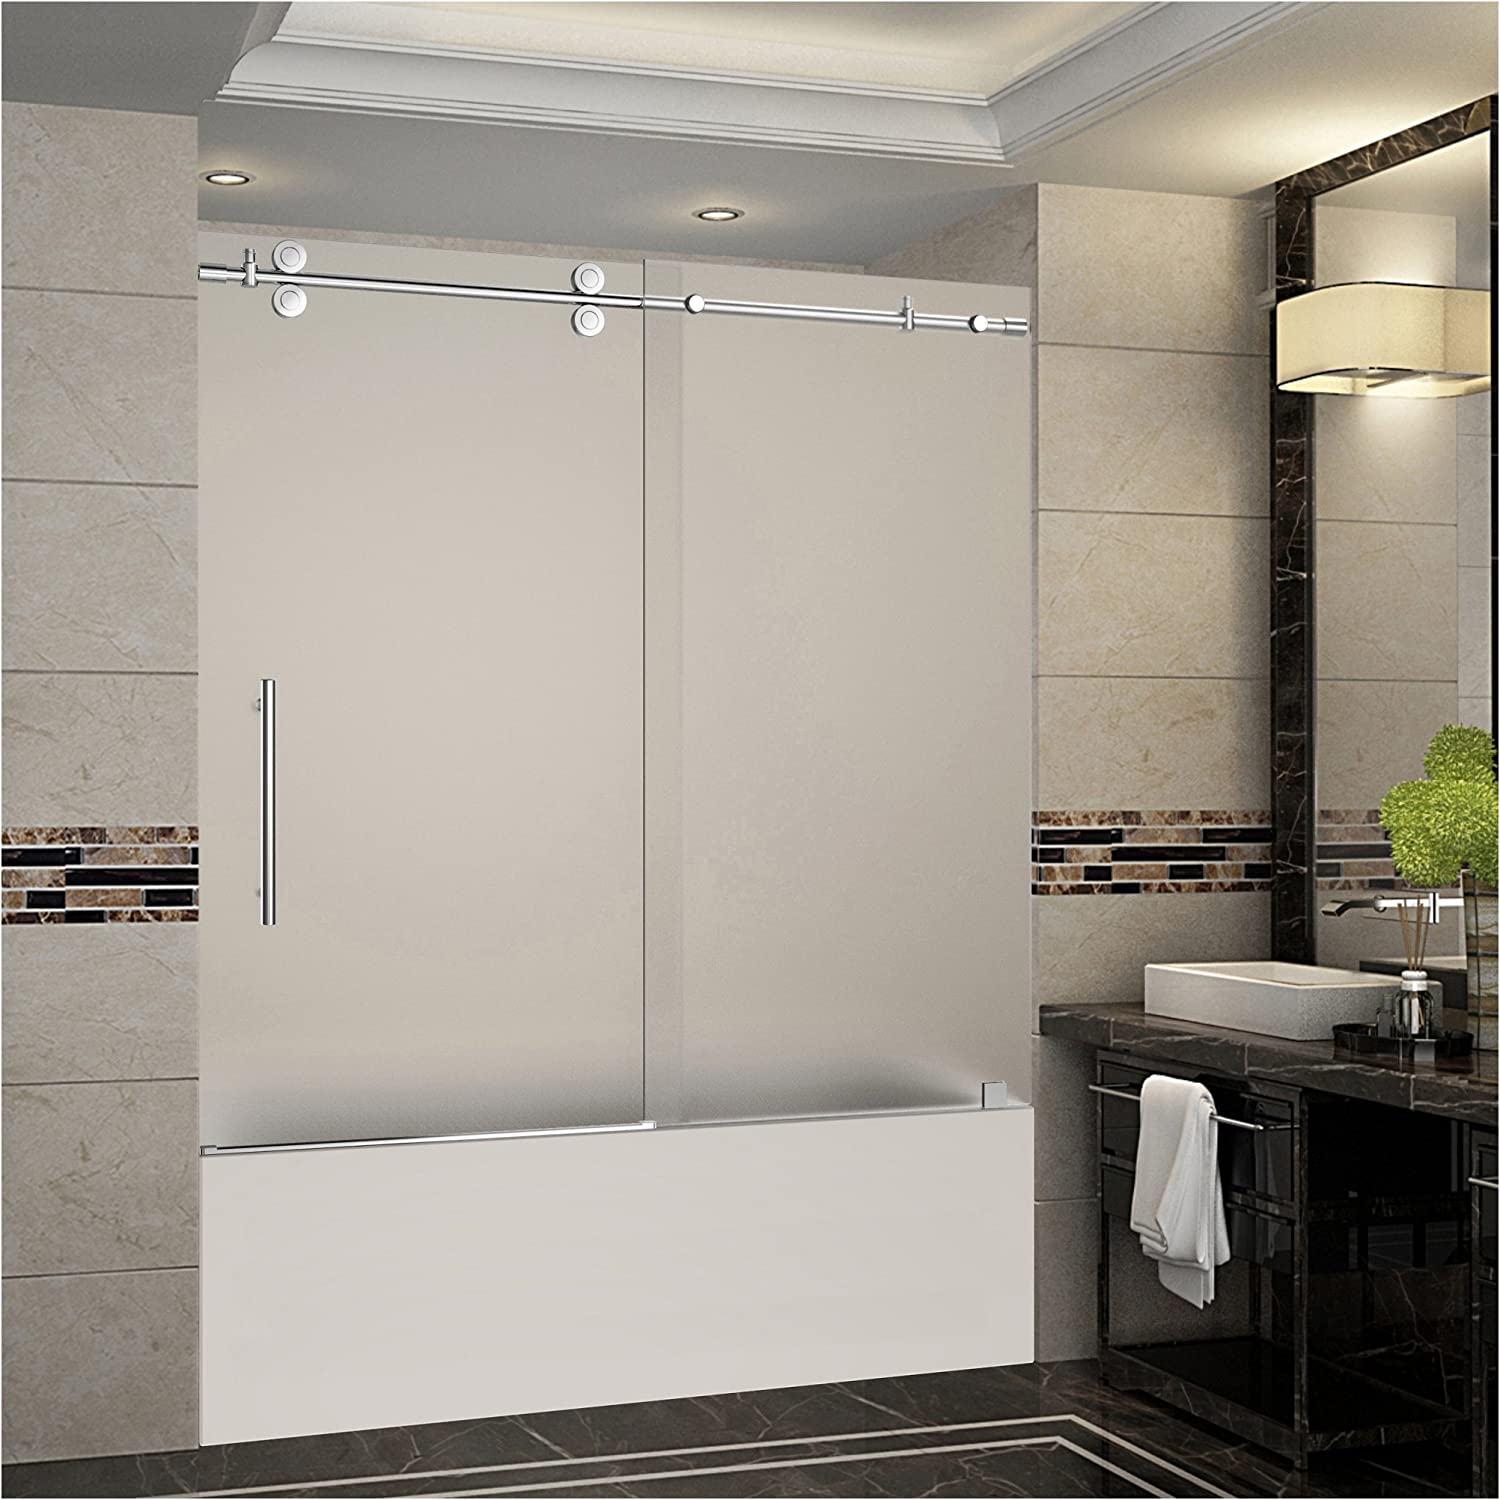 Aston Langham 56 To 60 X 60 Completely Frameless Tub Height Sliding Shower Door In Frosted Glass Chrome Amazon Com